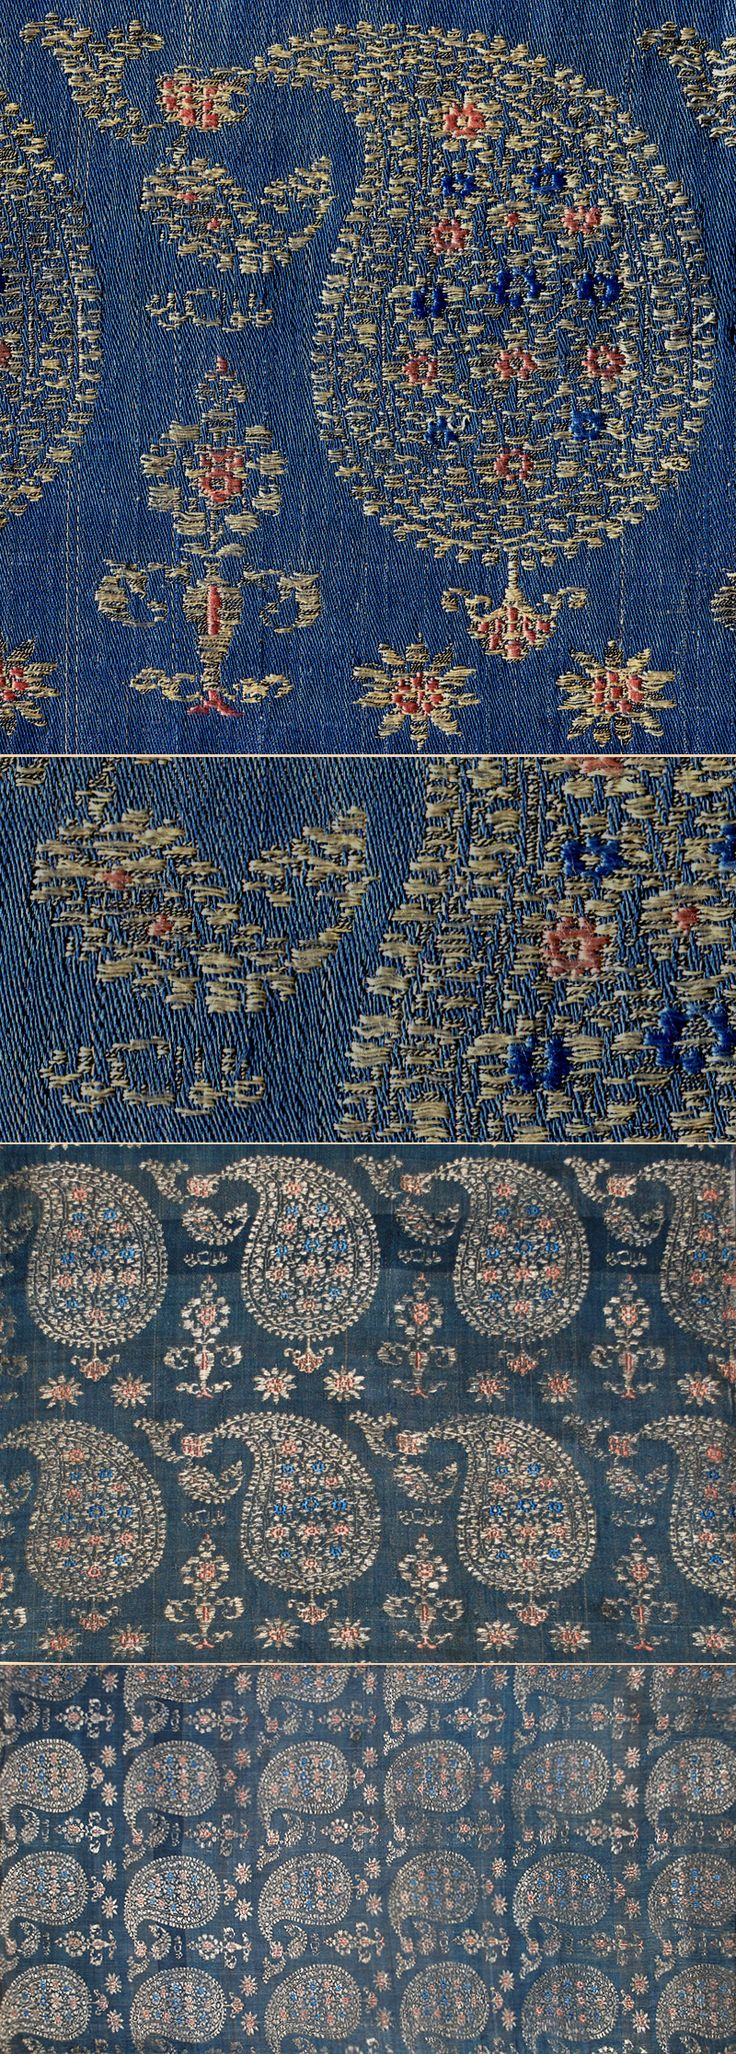 BOTEH! Silk Brocade with Silver Thread. Safavi Dynasty, Circa 1700 Size 26'' x 12''; 65 x 30cm. Notice how they are all arranged in neat rows and all face the same way, quite unlike modern paisley.